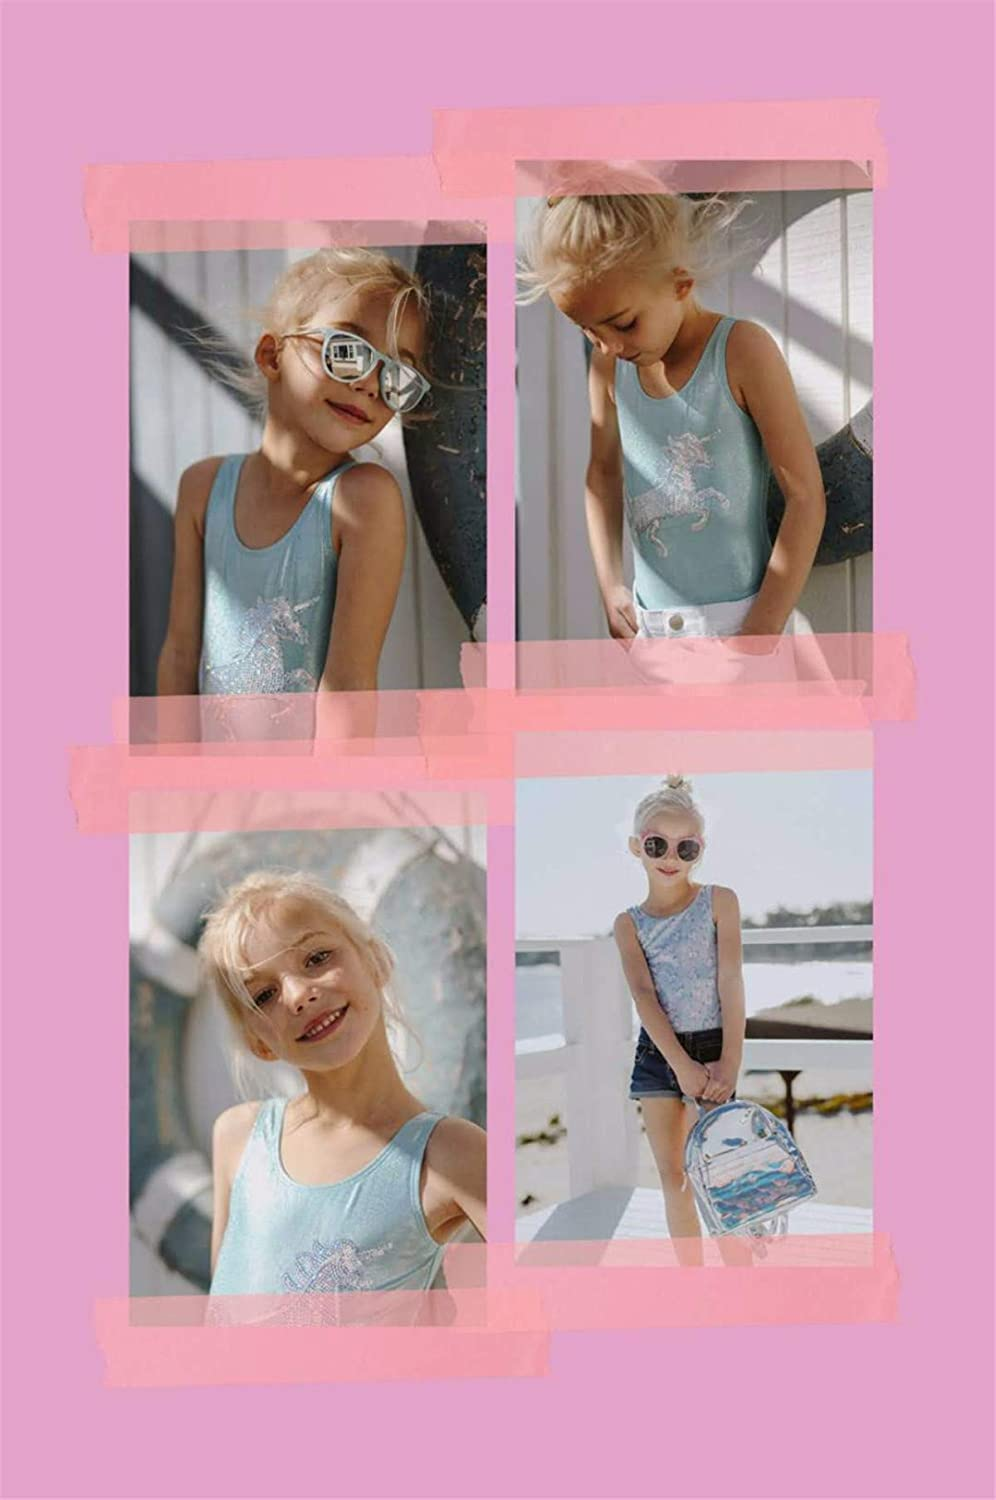 Rngtaqubeic Swimwear for Girls one Piece Children Swimsuits Kids Bathing Suit 3-8 Years